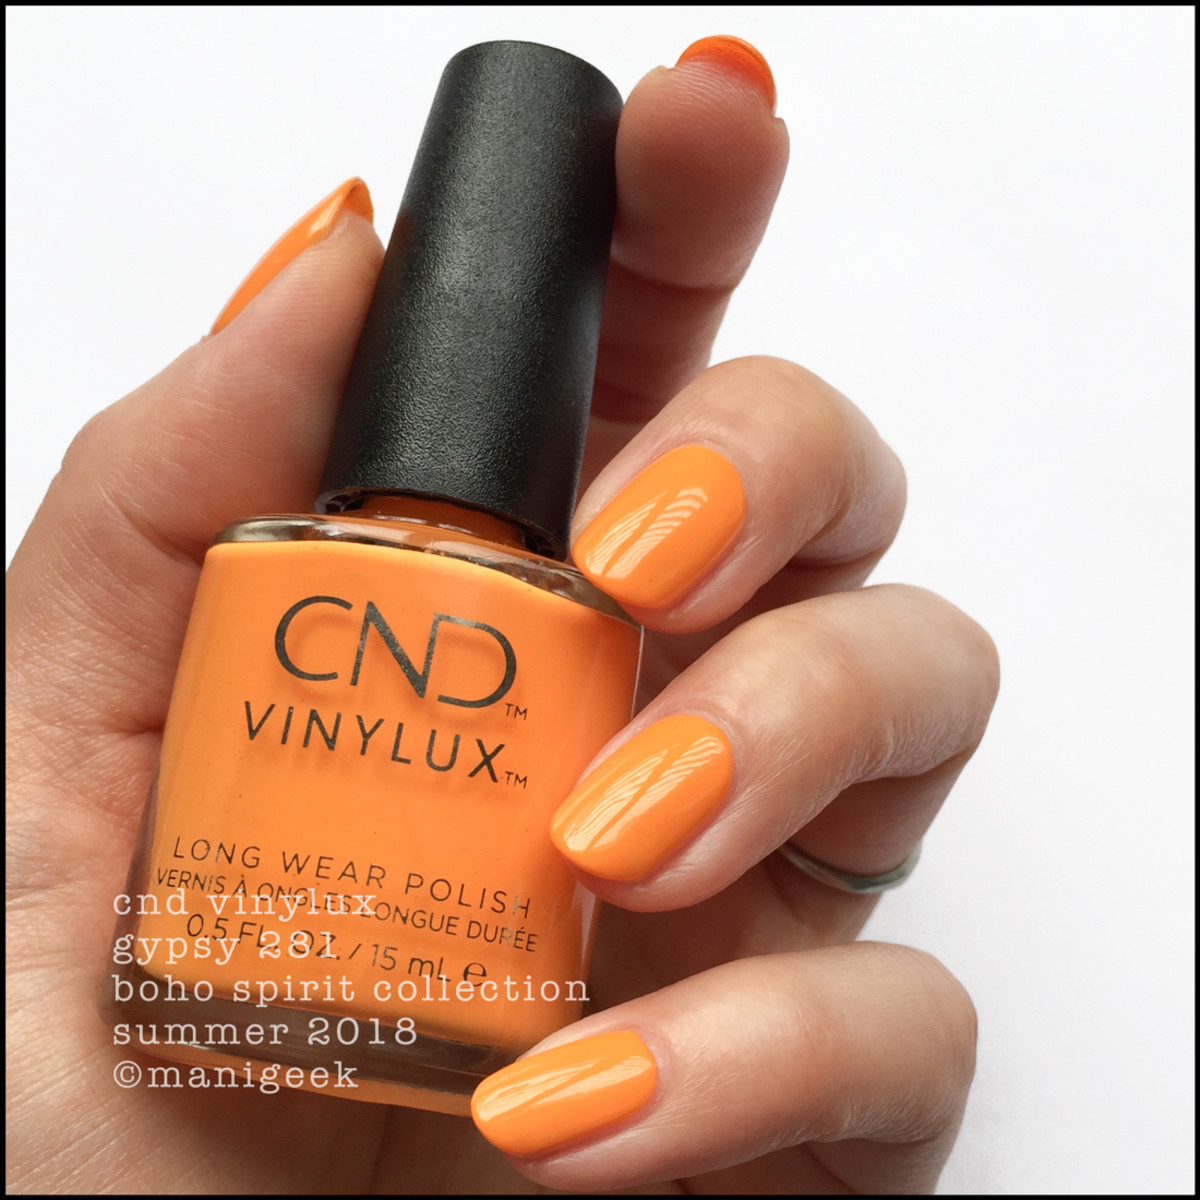 CND Vinylux Gypsy 281 _ CND Boho Spirit Collection Summer 2018